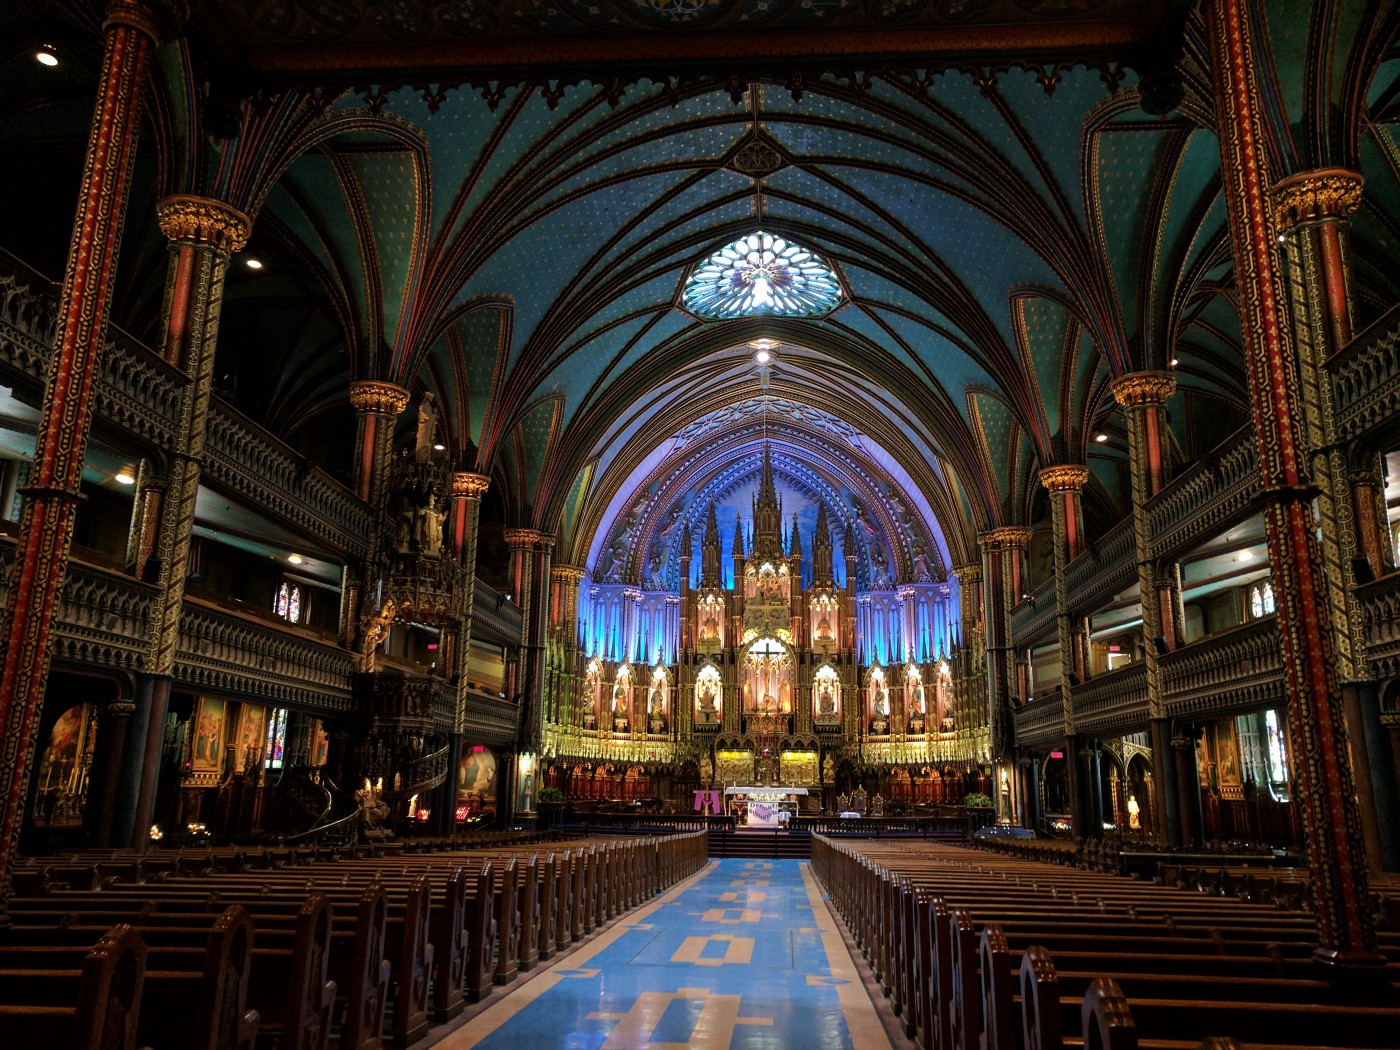 An inspiring cathedral